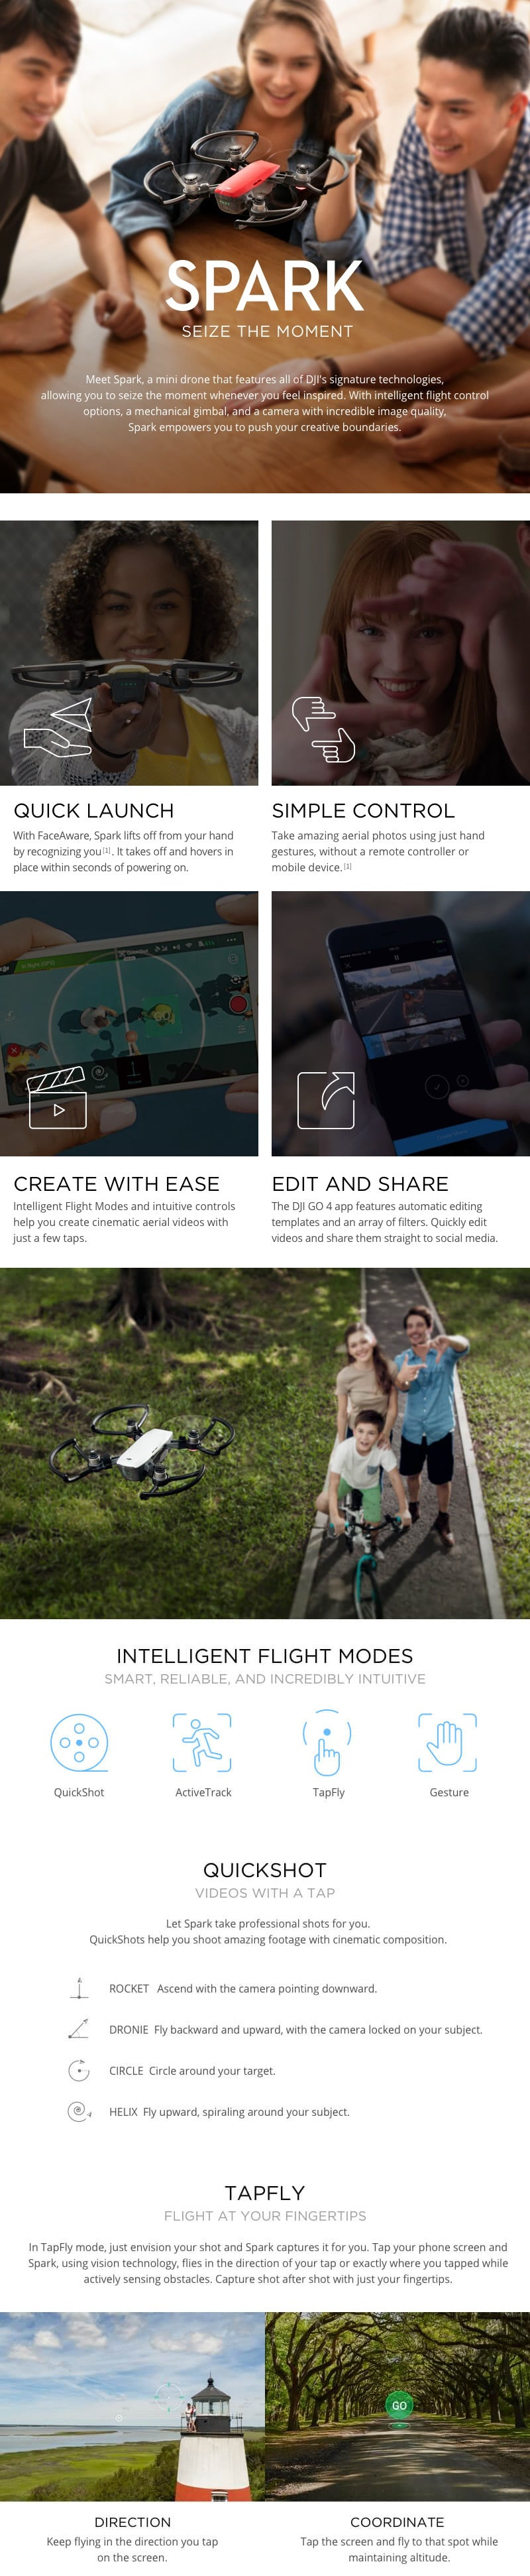 Alpine White DJI™ Spark Drone – Refurbished with Full